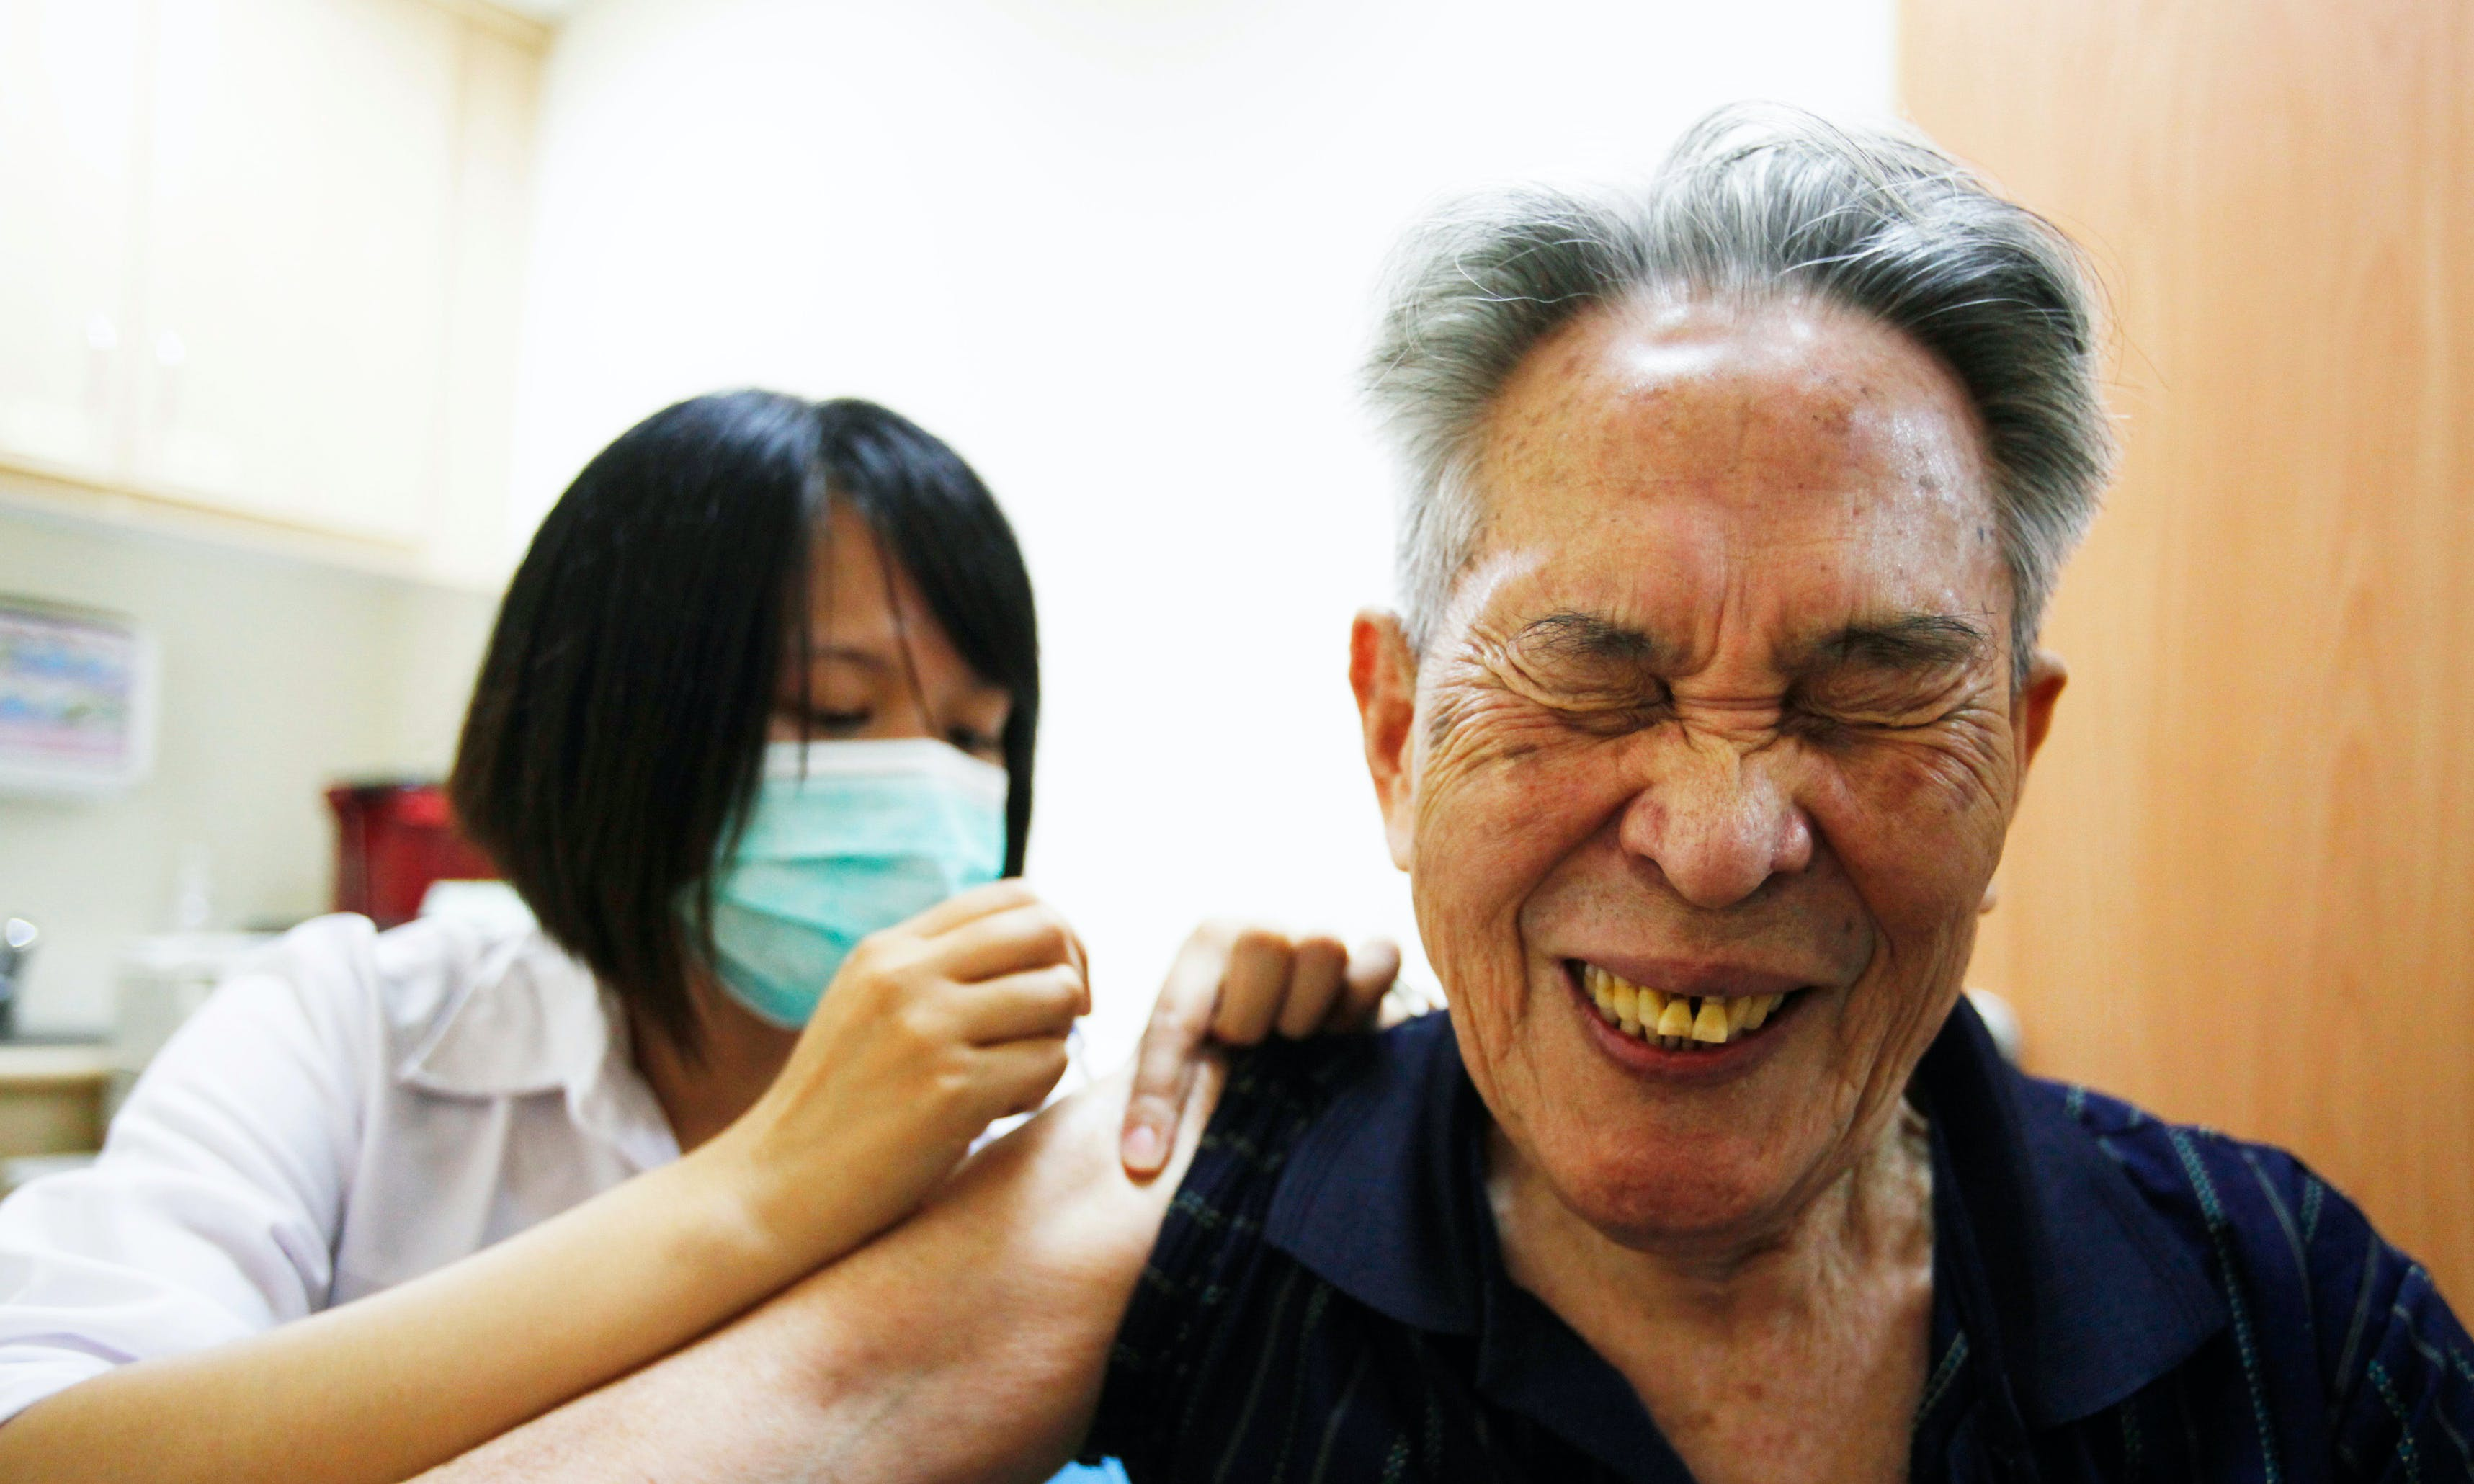 Taiwan Primes for Old Age Apocalypse with Long-Term Care Plan